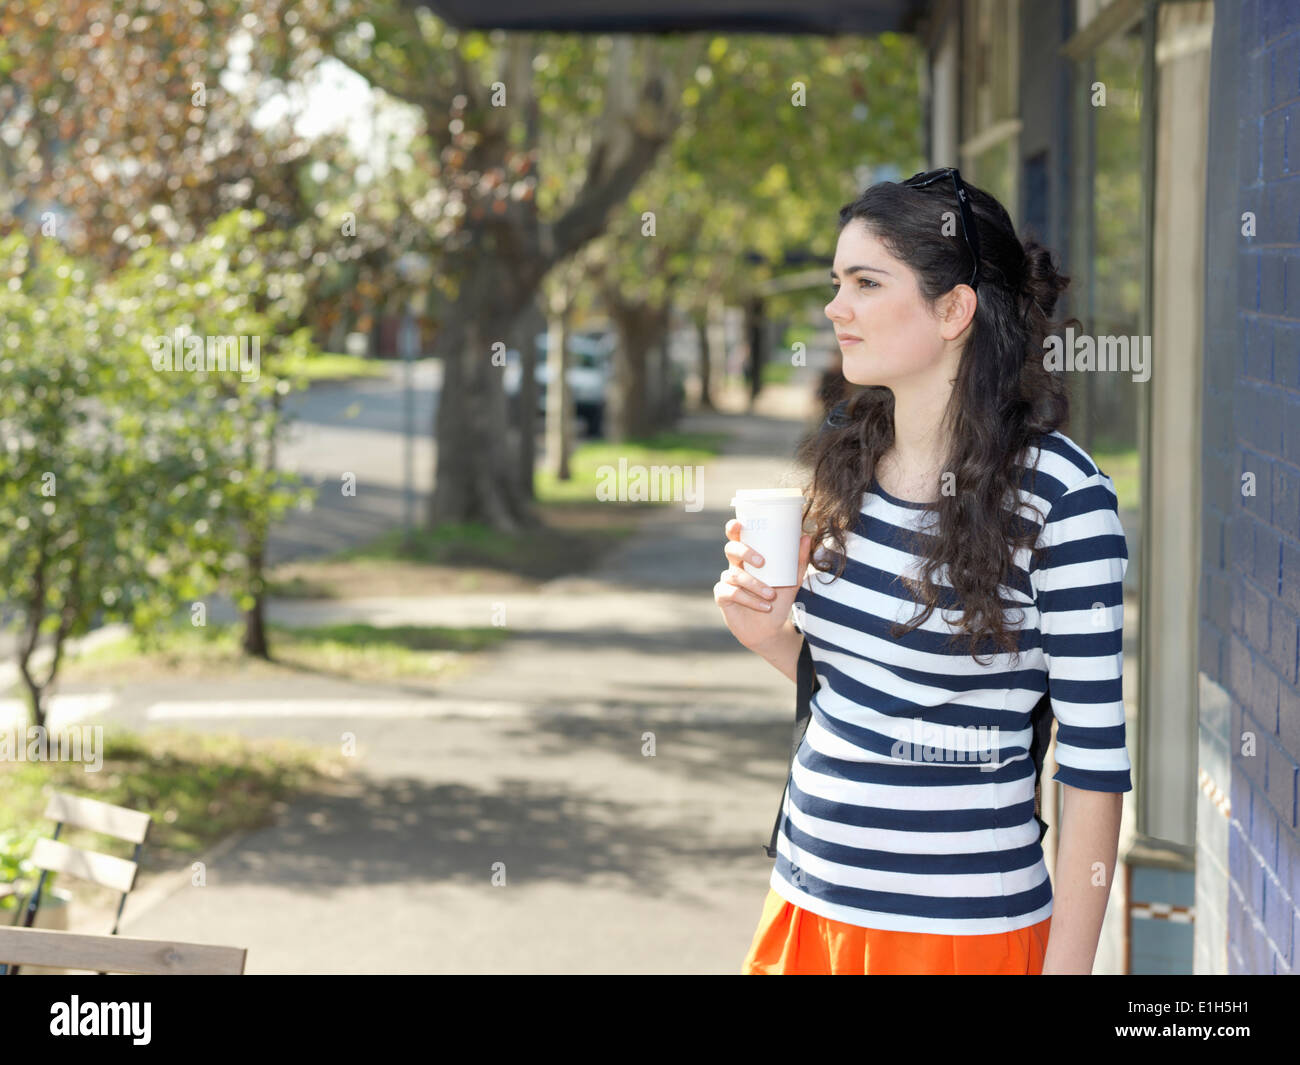 Young woman with takeaway coffee waiting on street - Stock Image